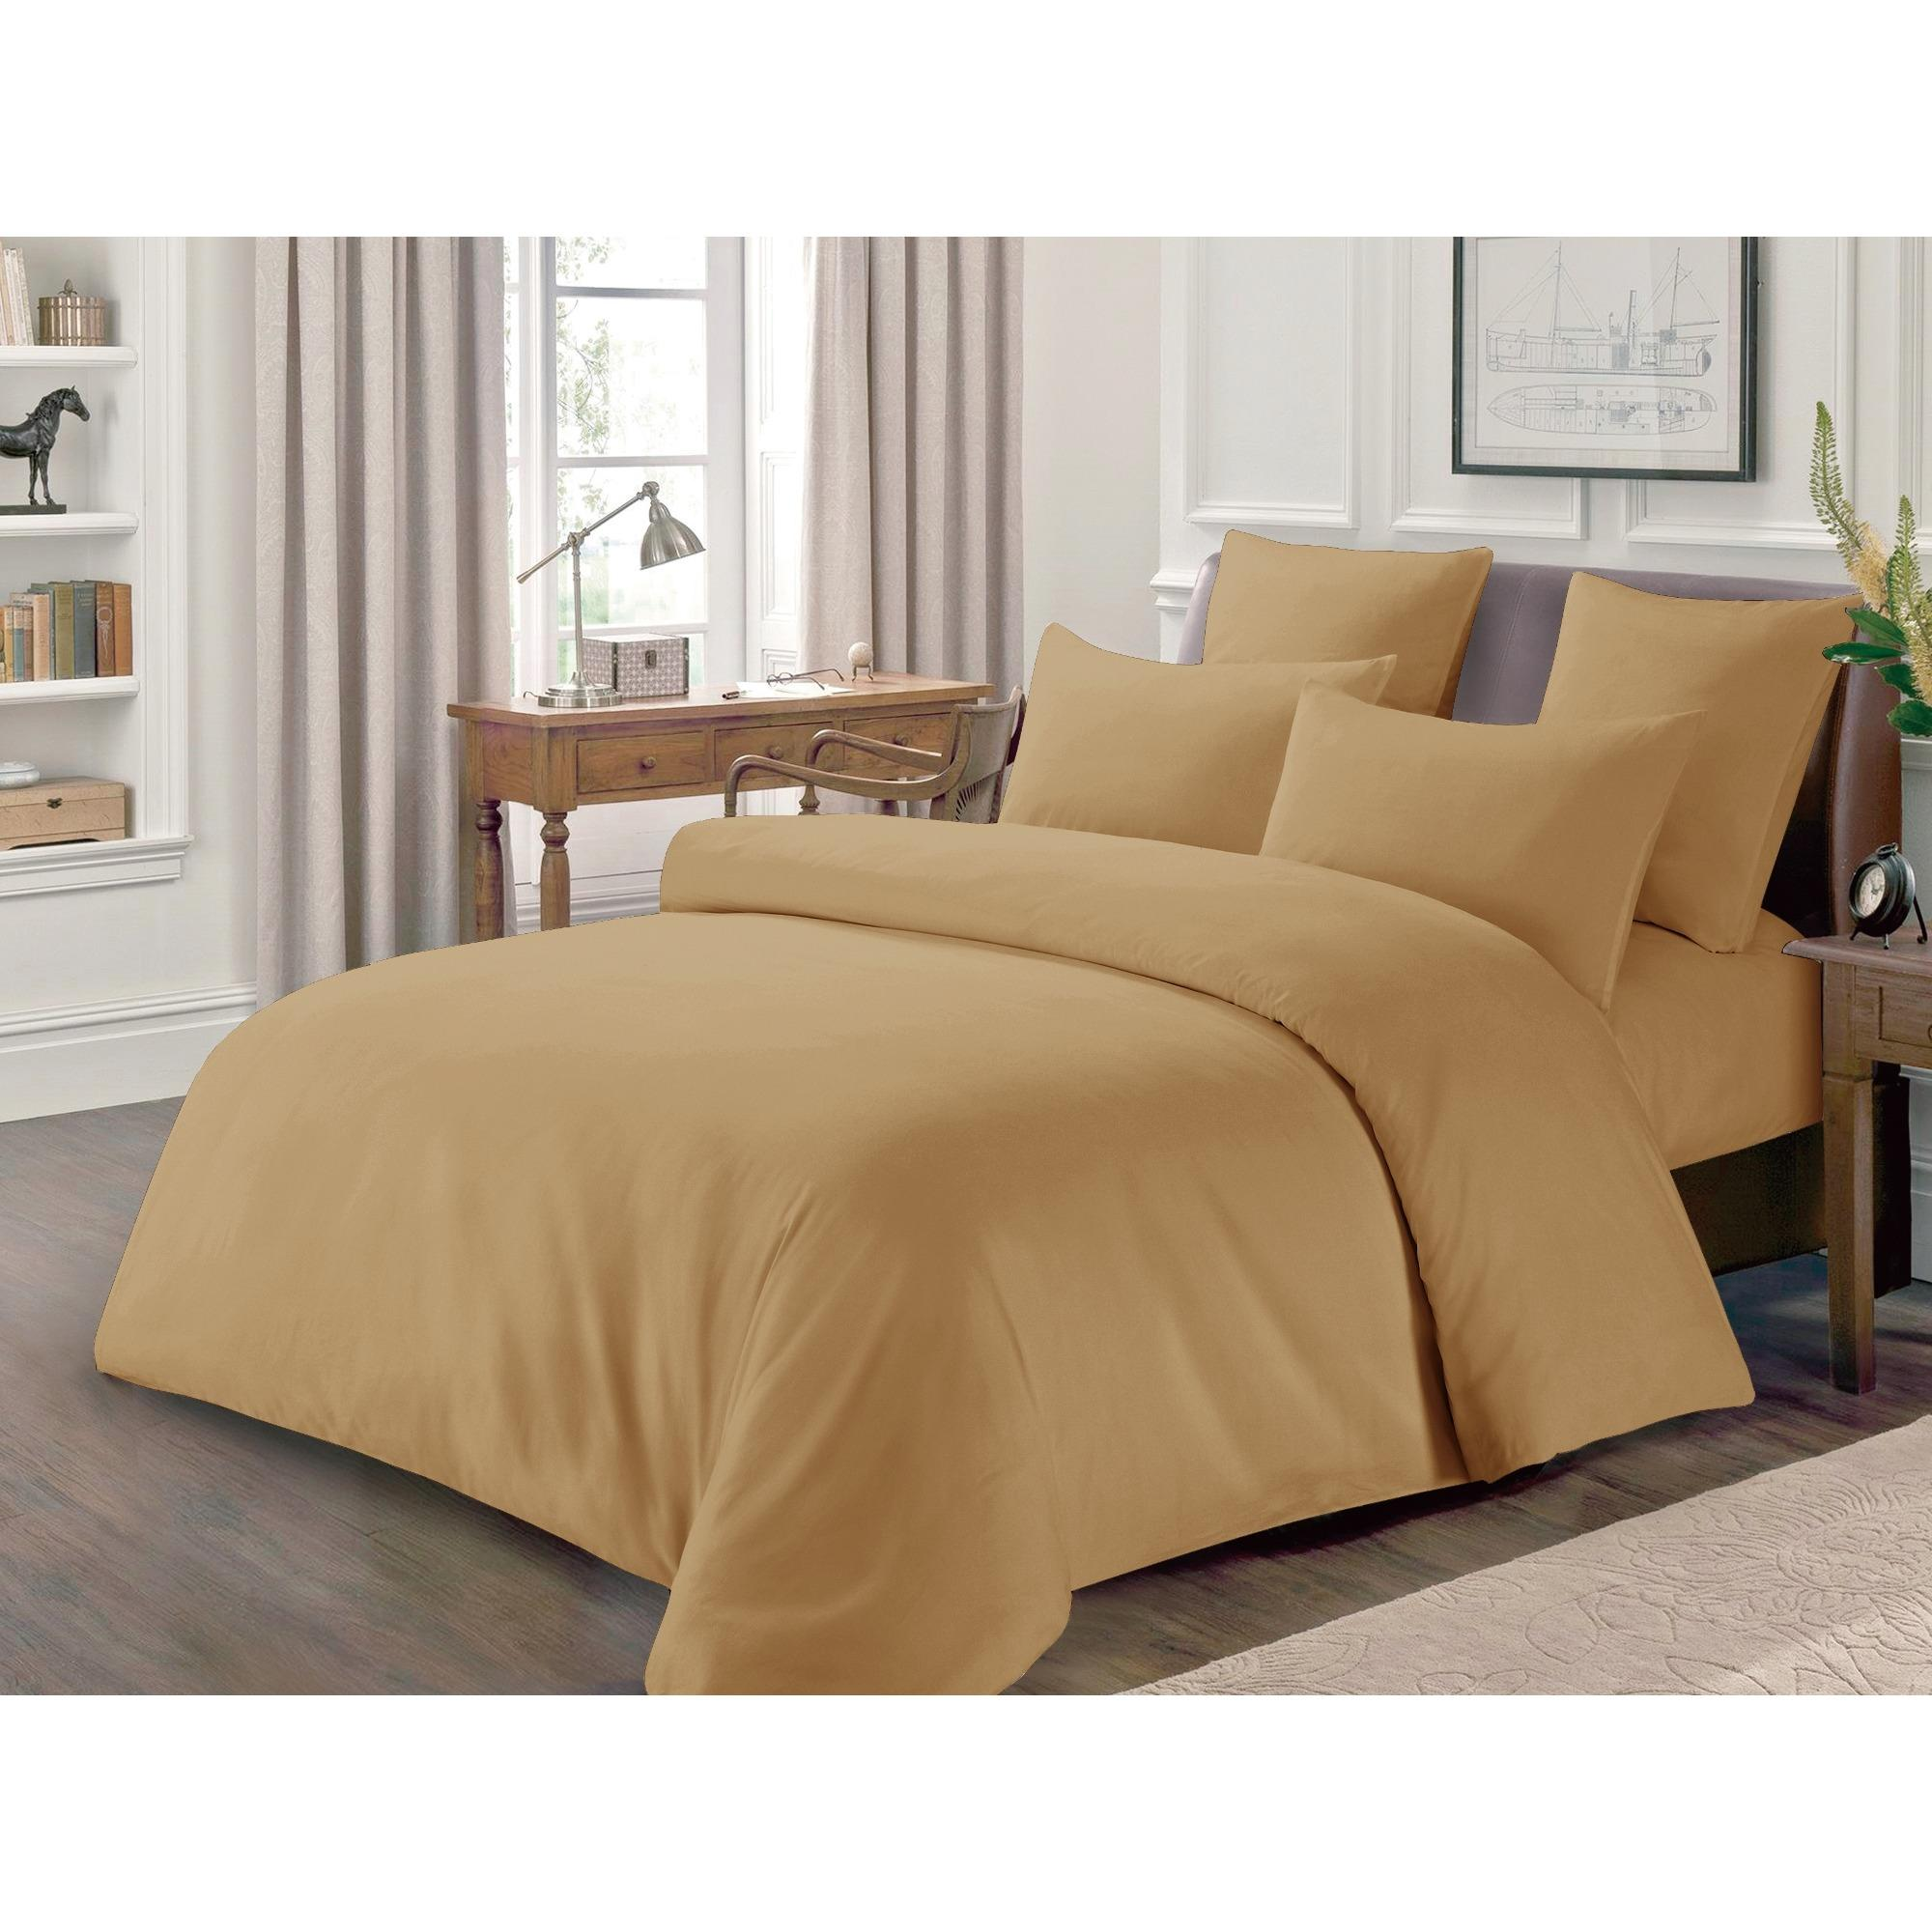 Solid color (Beige) Luxury look Hotel Collection 100% Pure cotton bed sheet sets